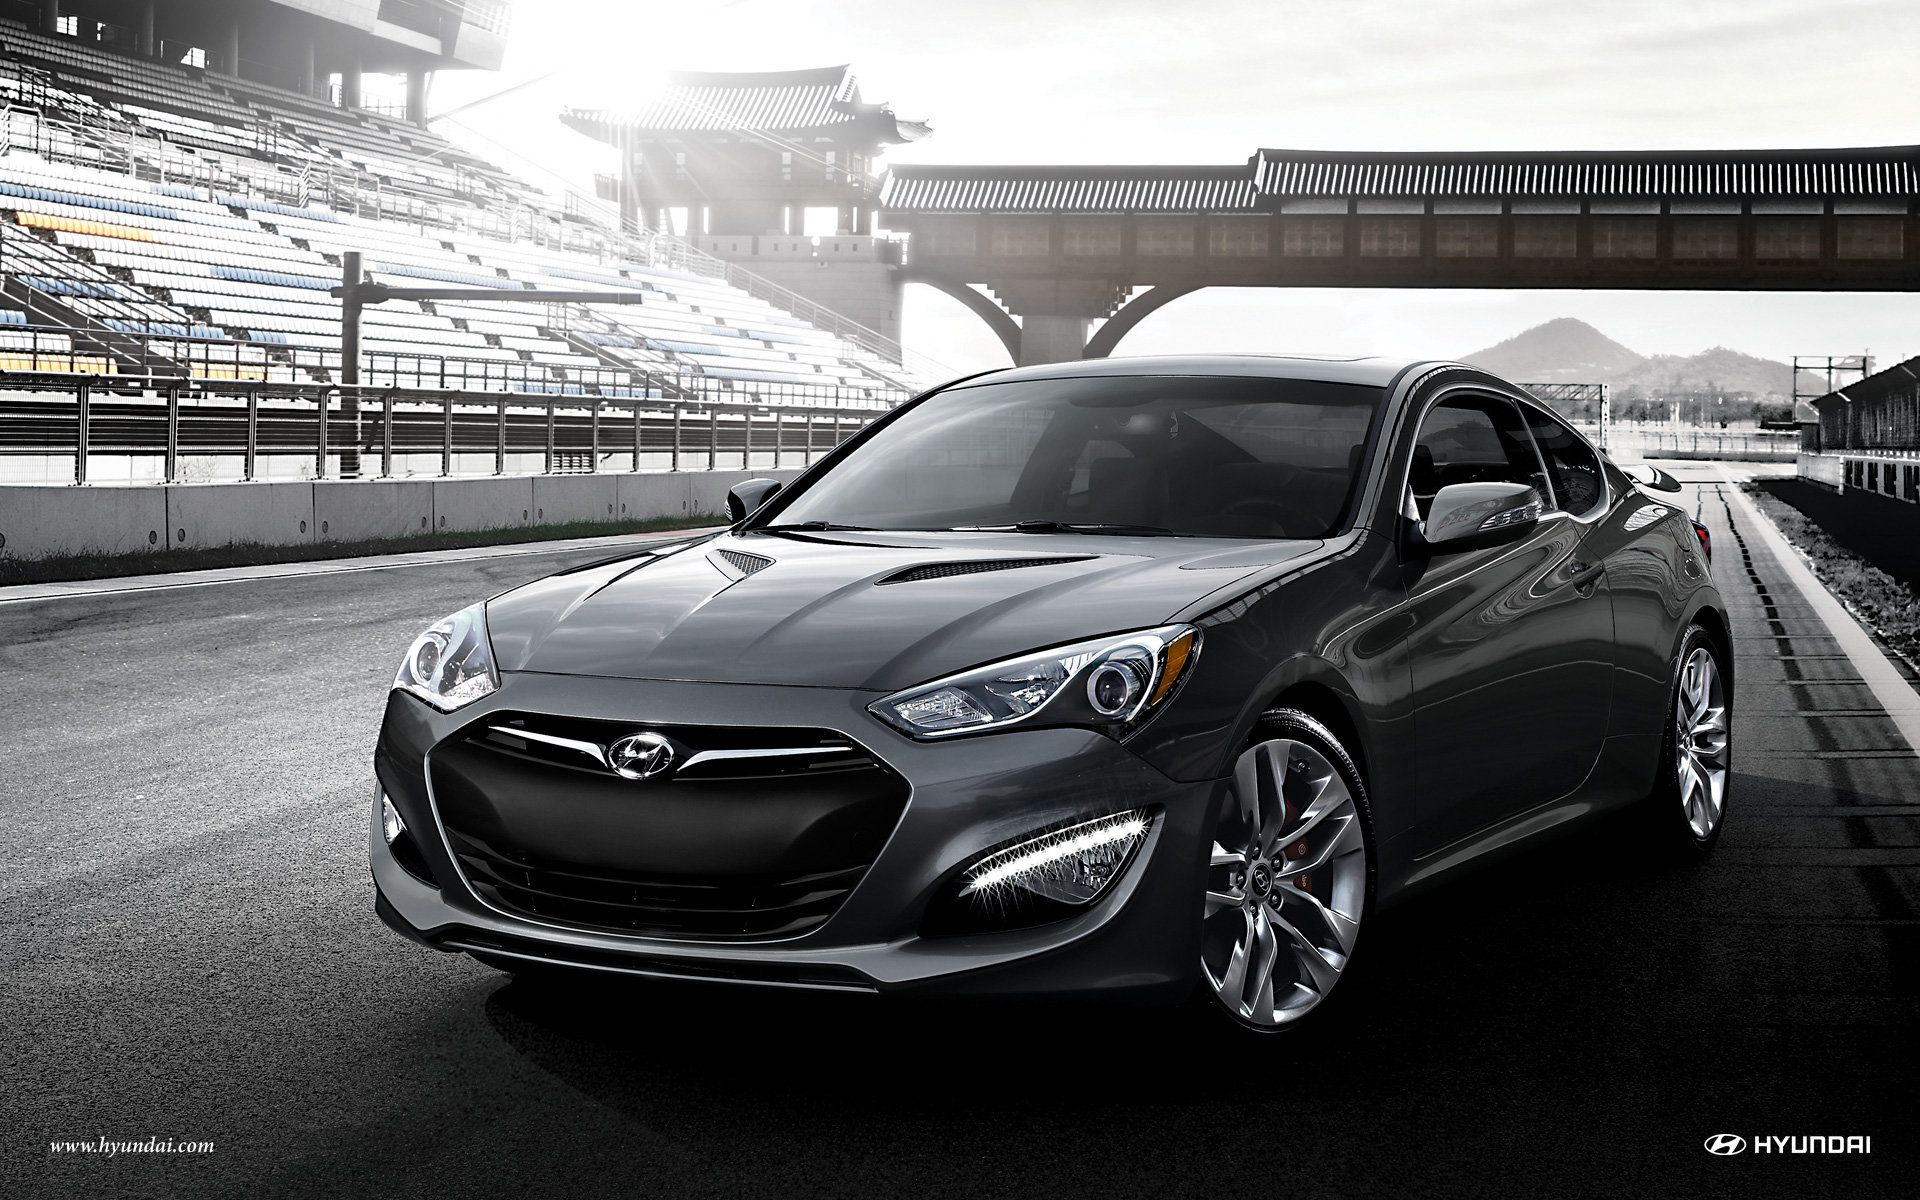 2015 Hyundai Genesis Coupe Wallpaper Hd Wallpaper Hyundai